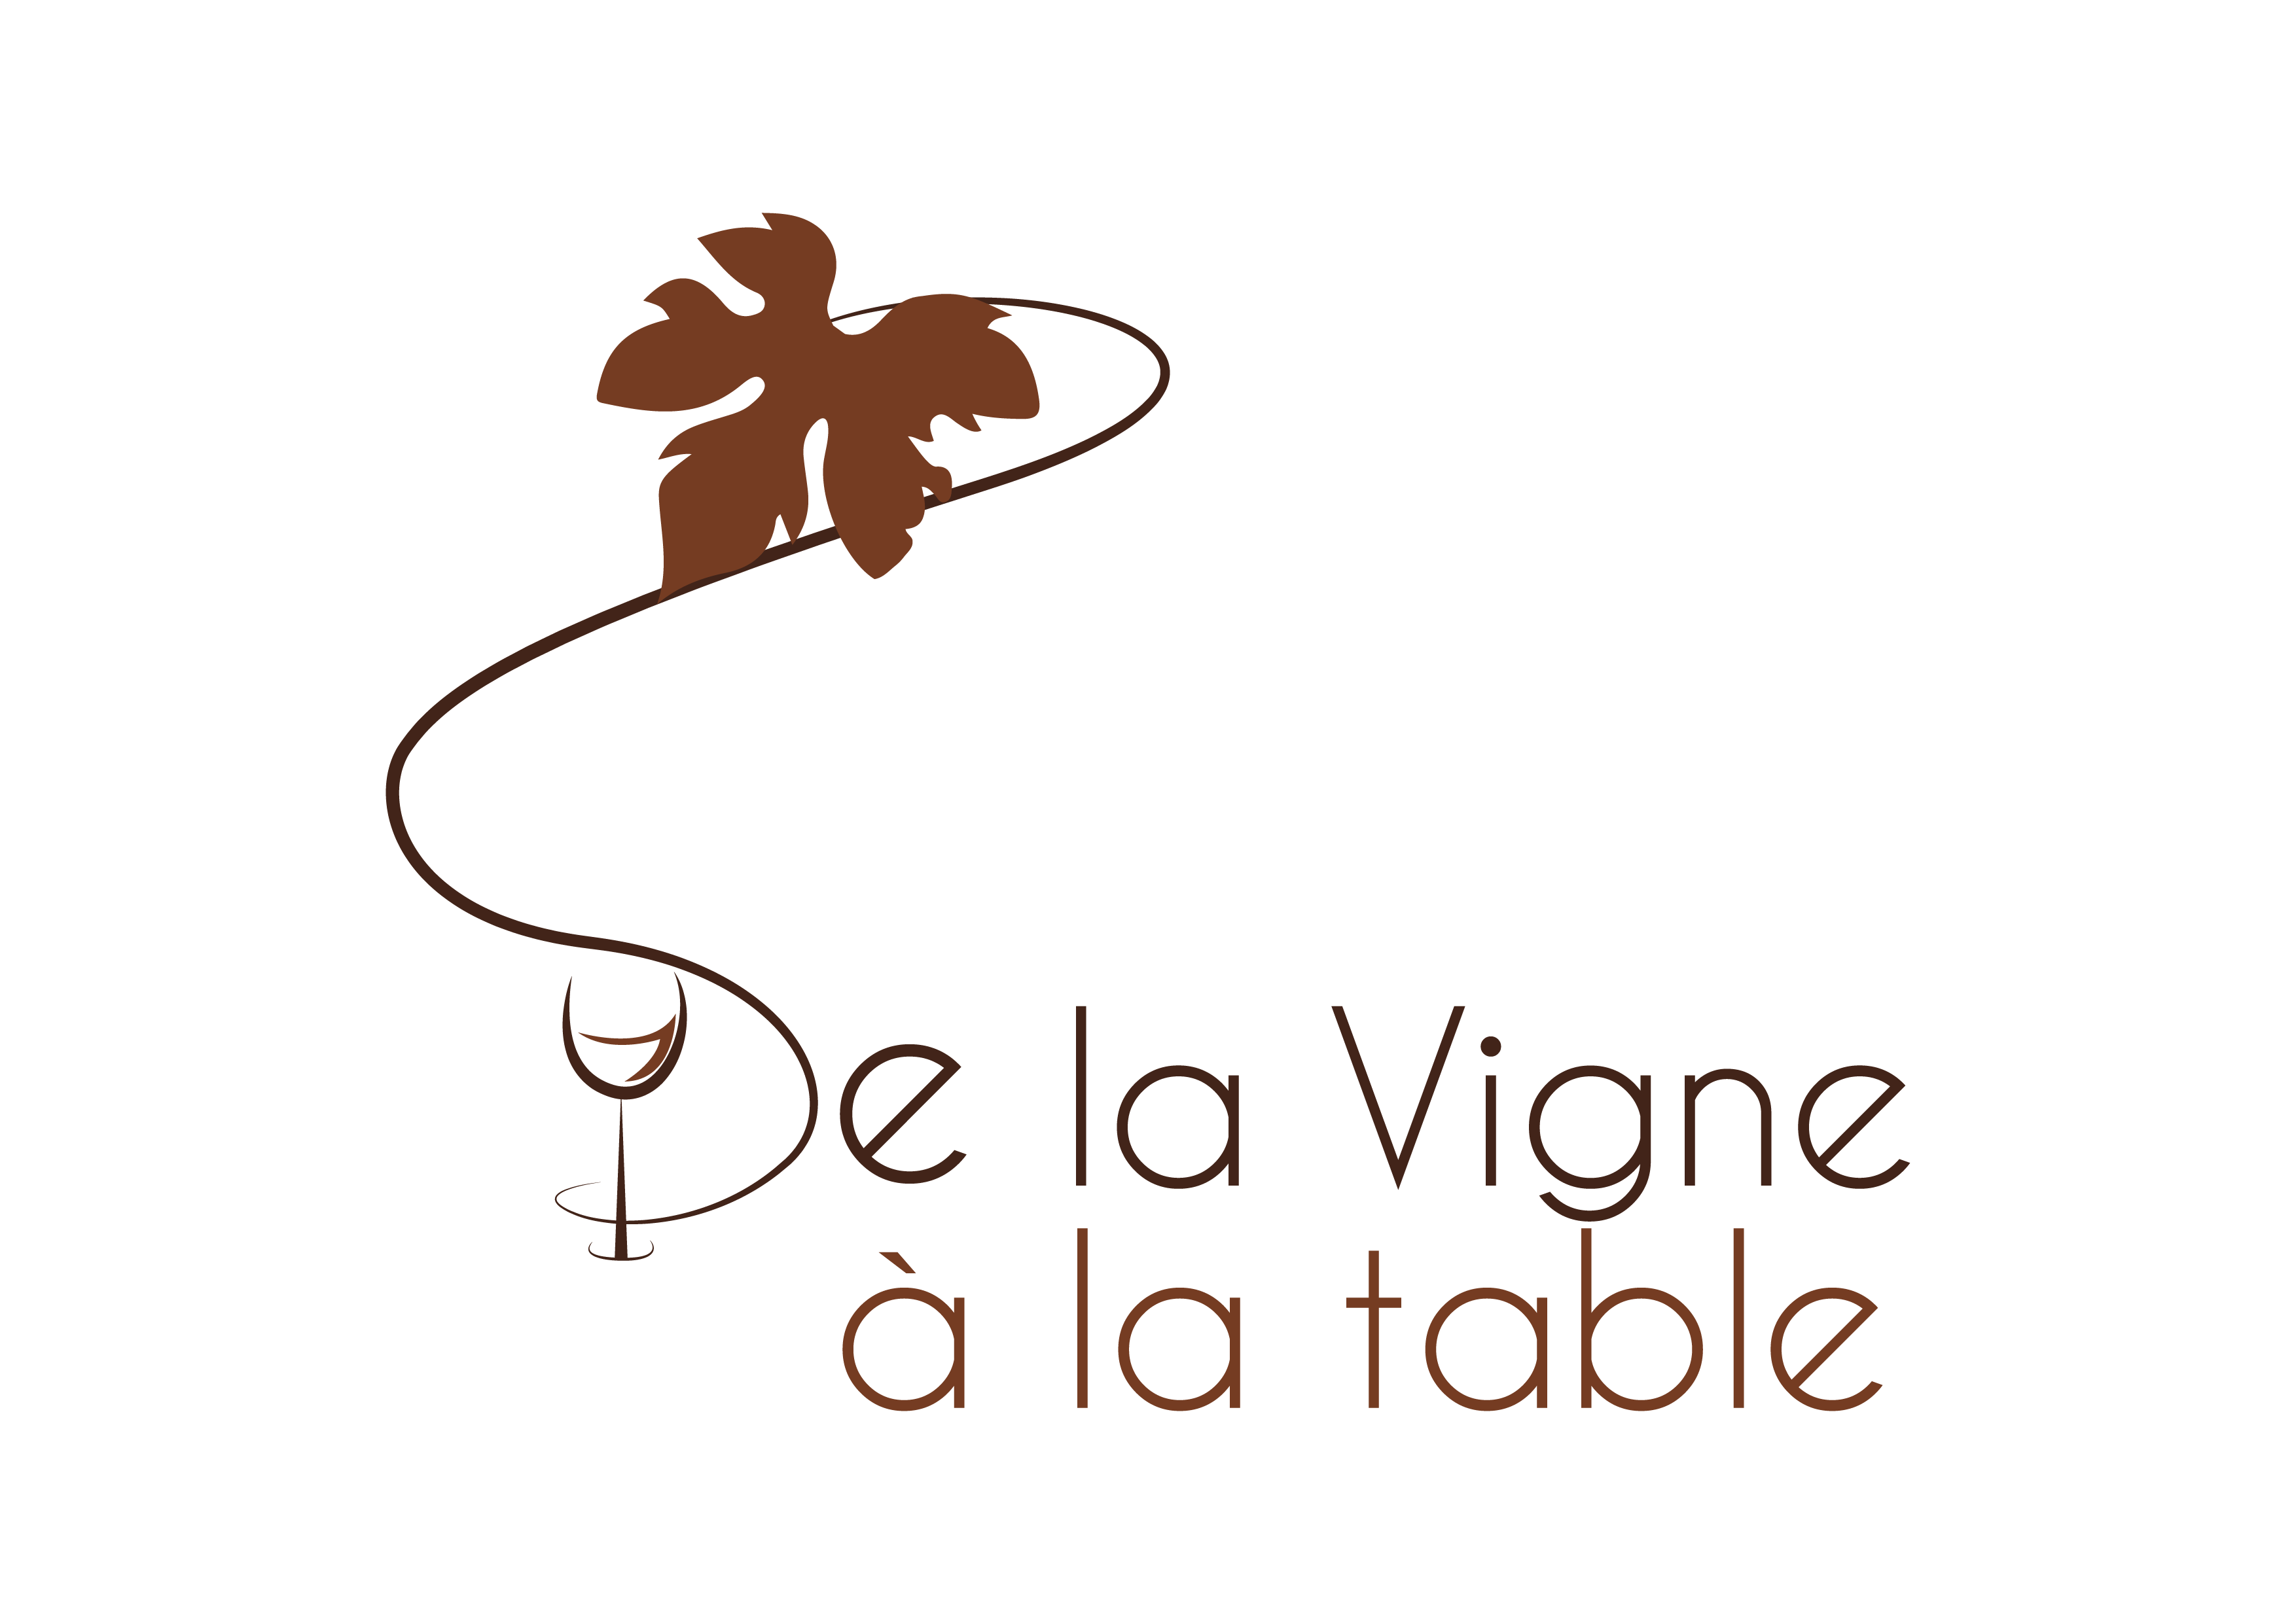 De la vigne à la table